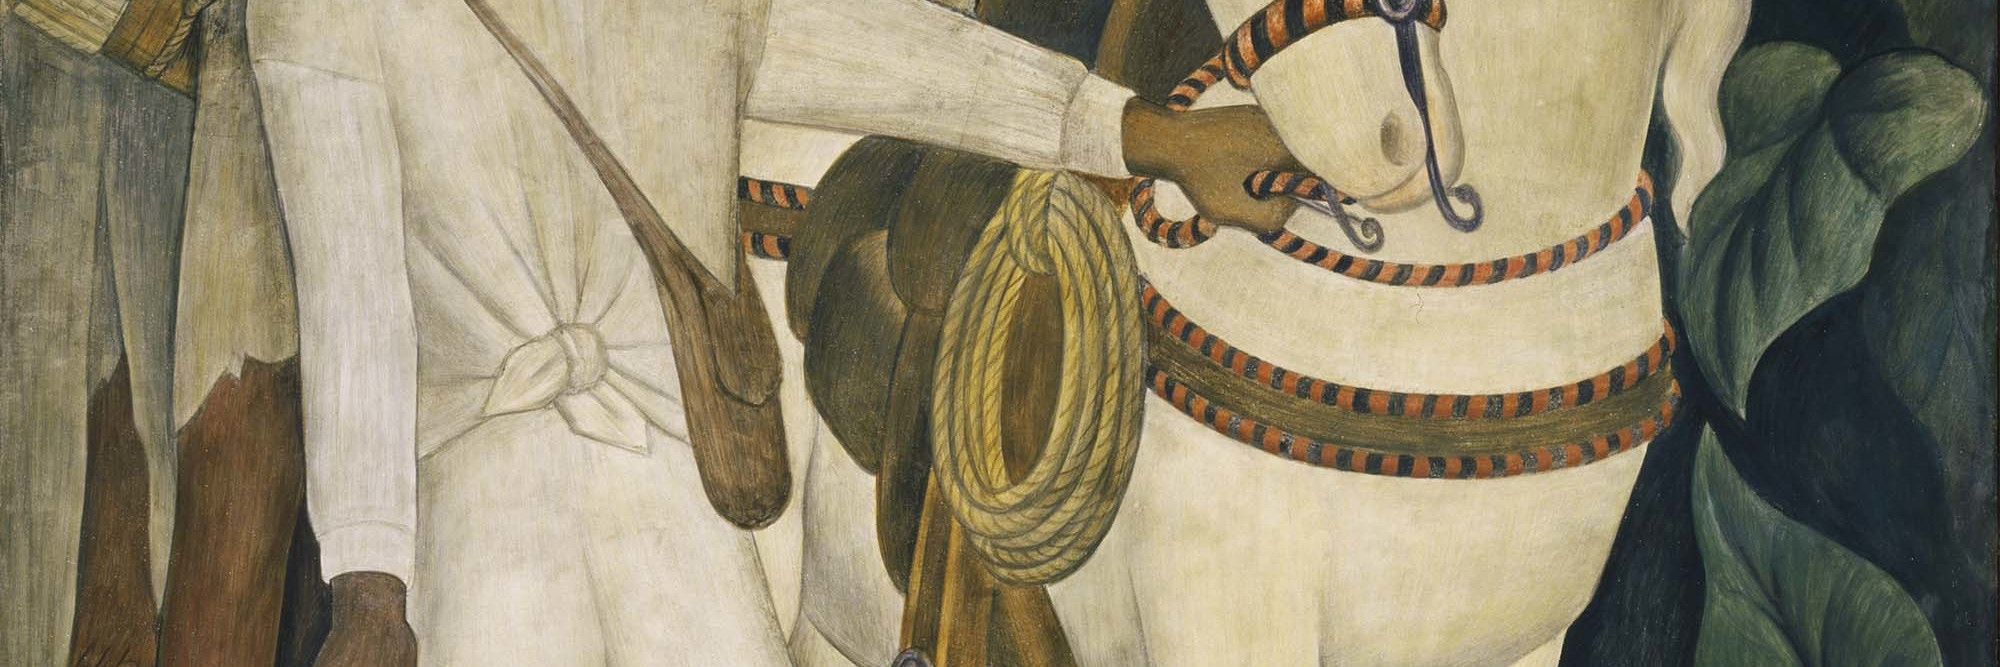 Diego Rivera. <em>Agrarian Leader Zapata</em>. 1931. Fresco, 7' 9 3/4&quot; x 6' 2&quot; (238.1 x 188 cm). The Museum of Modern Art. Abby Aldrich Rockefeller Fund